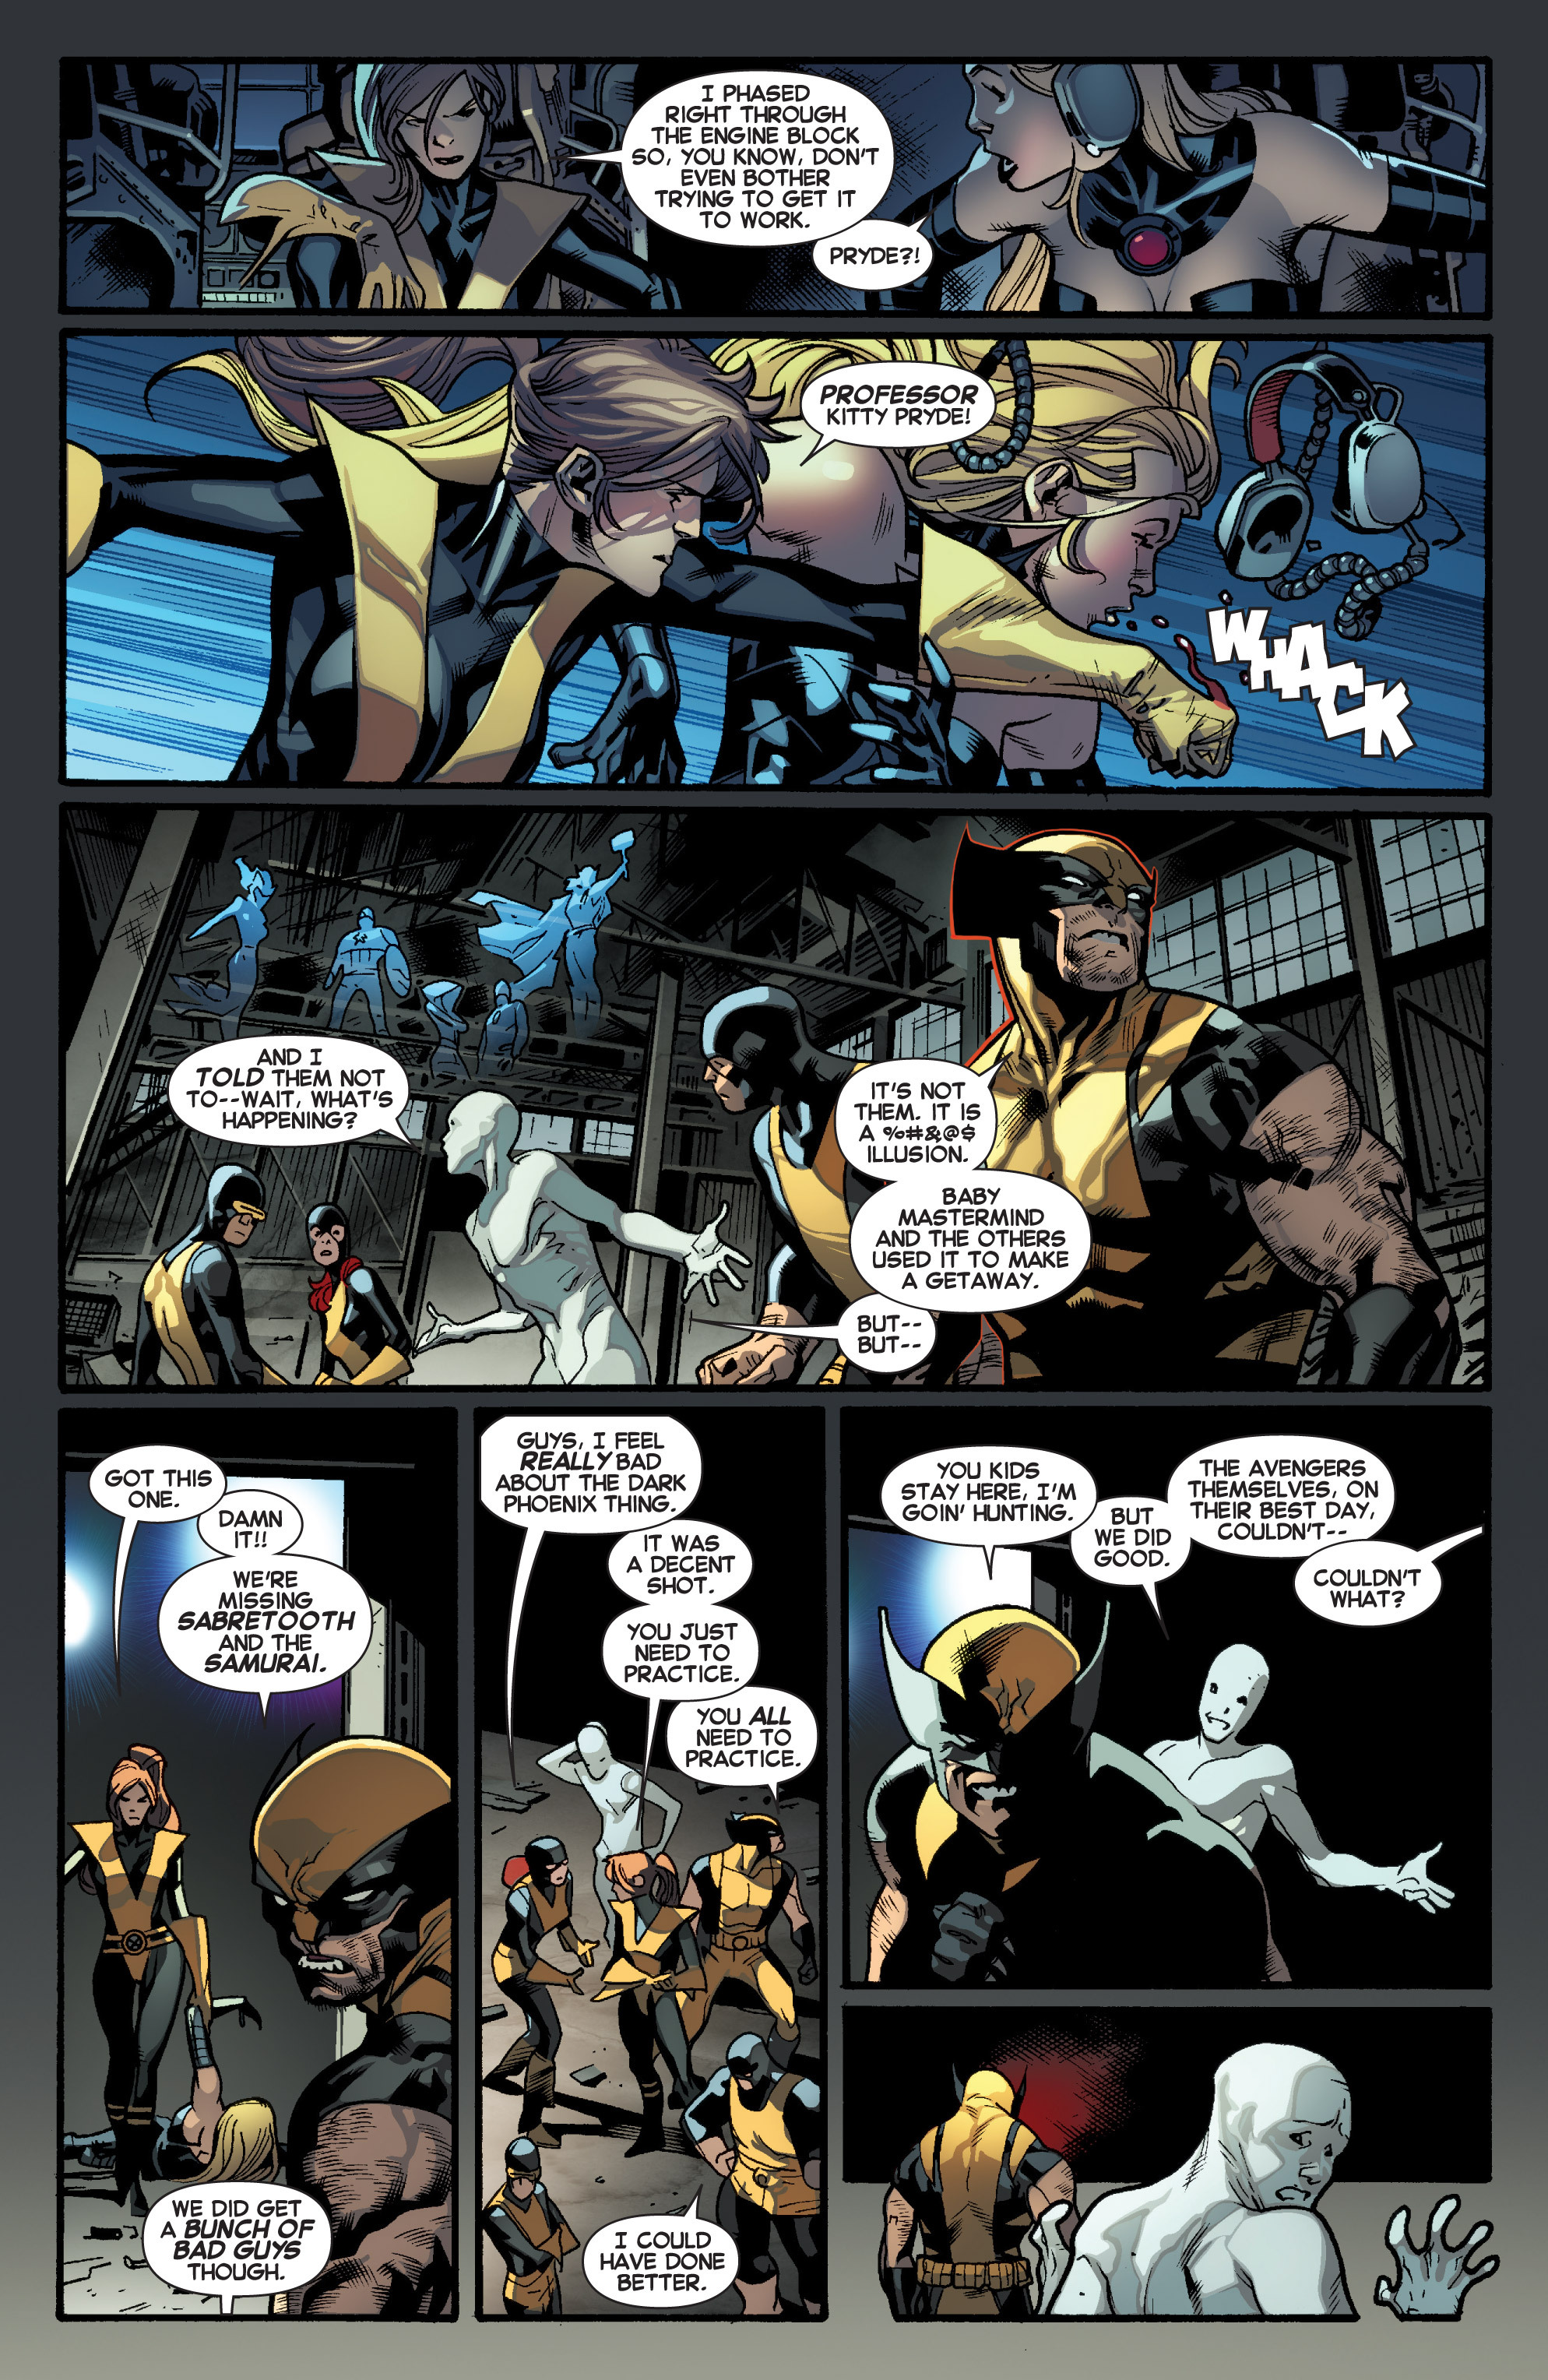 Read online All-New X-Men (2013) comic -  Issue # _Special - Out Of Their Depth - 82